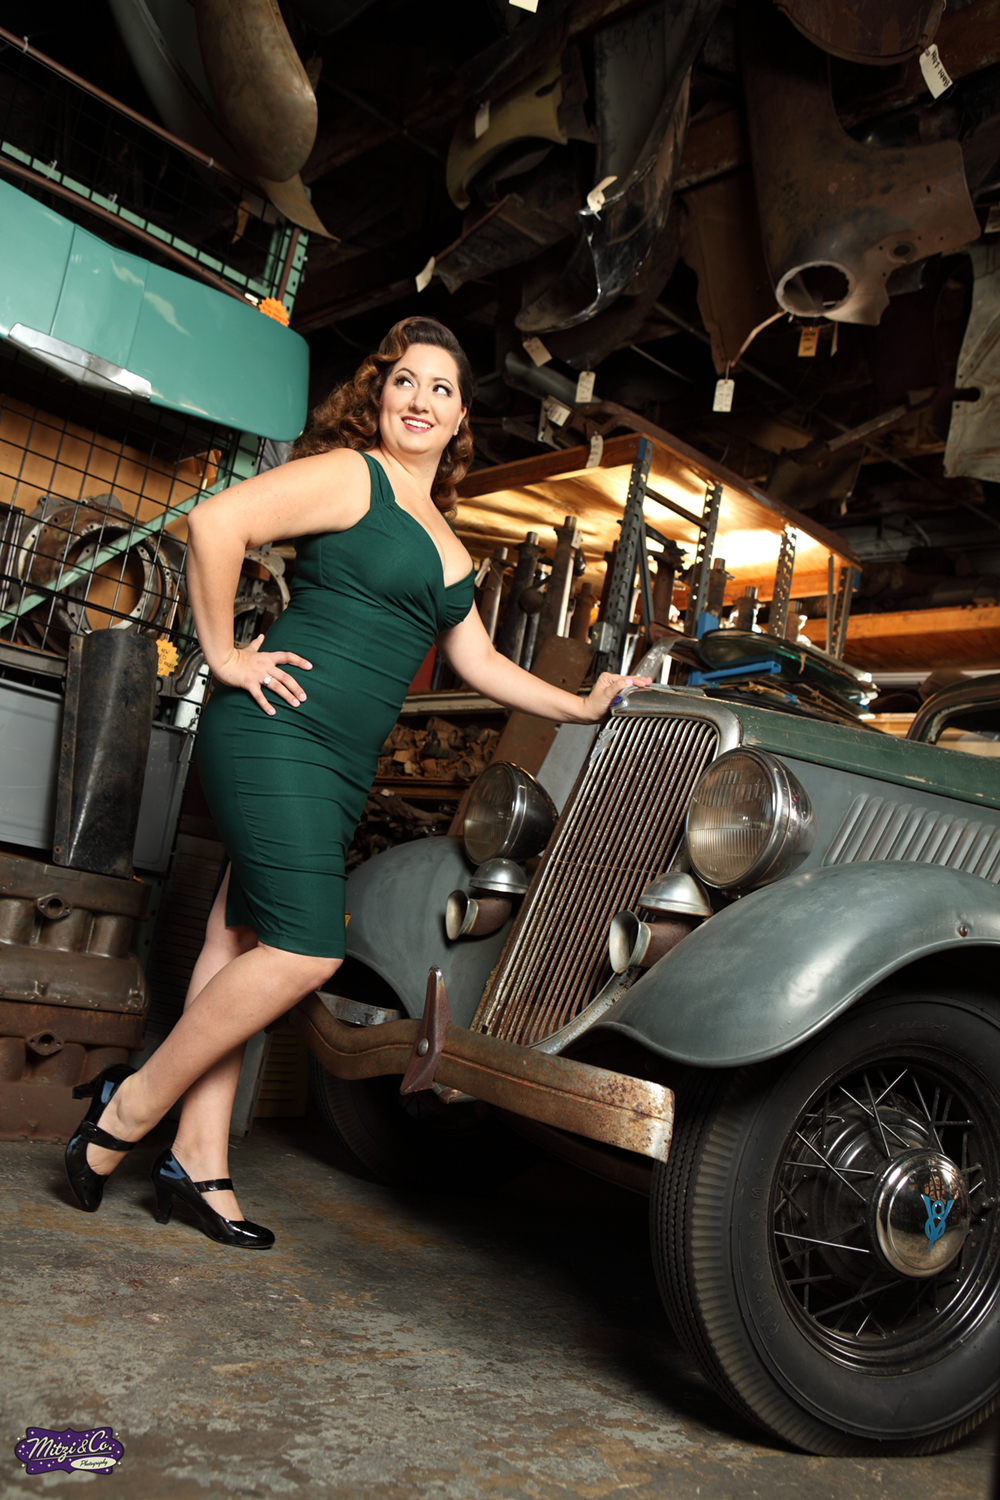 Pinup of the Week: Dame DeLaCruise